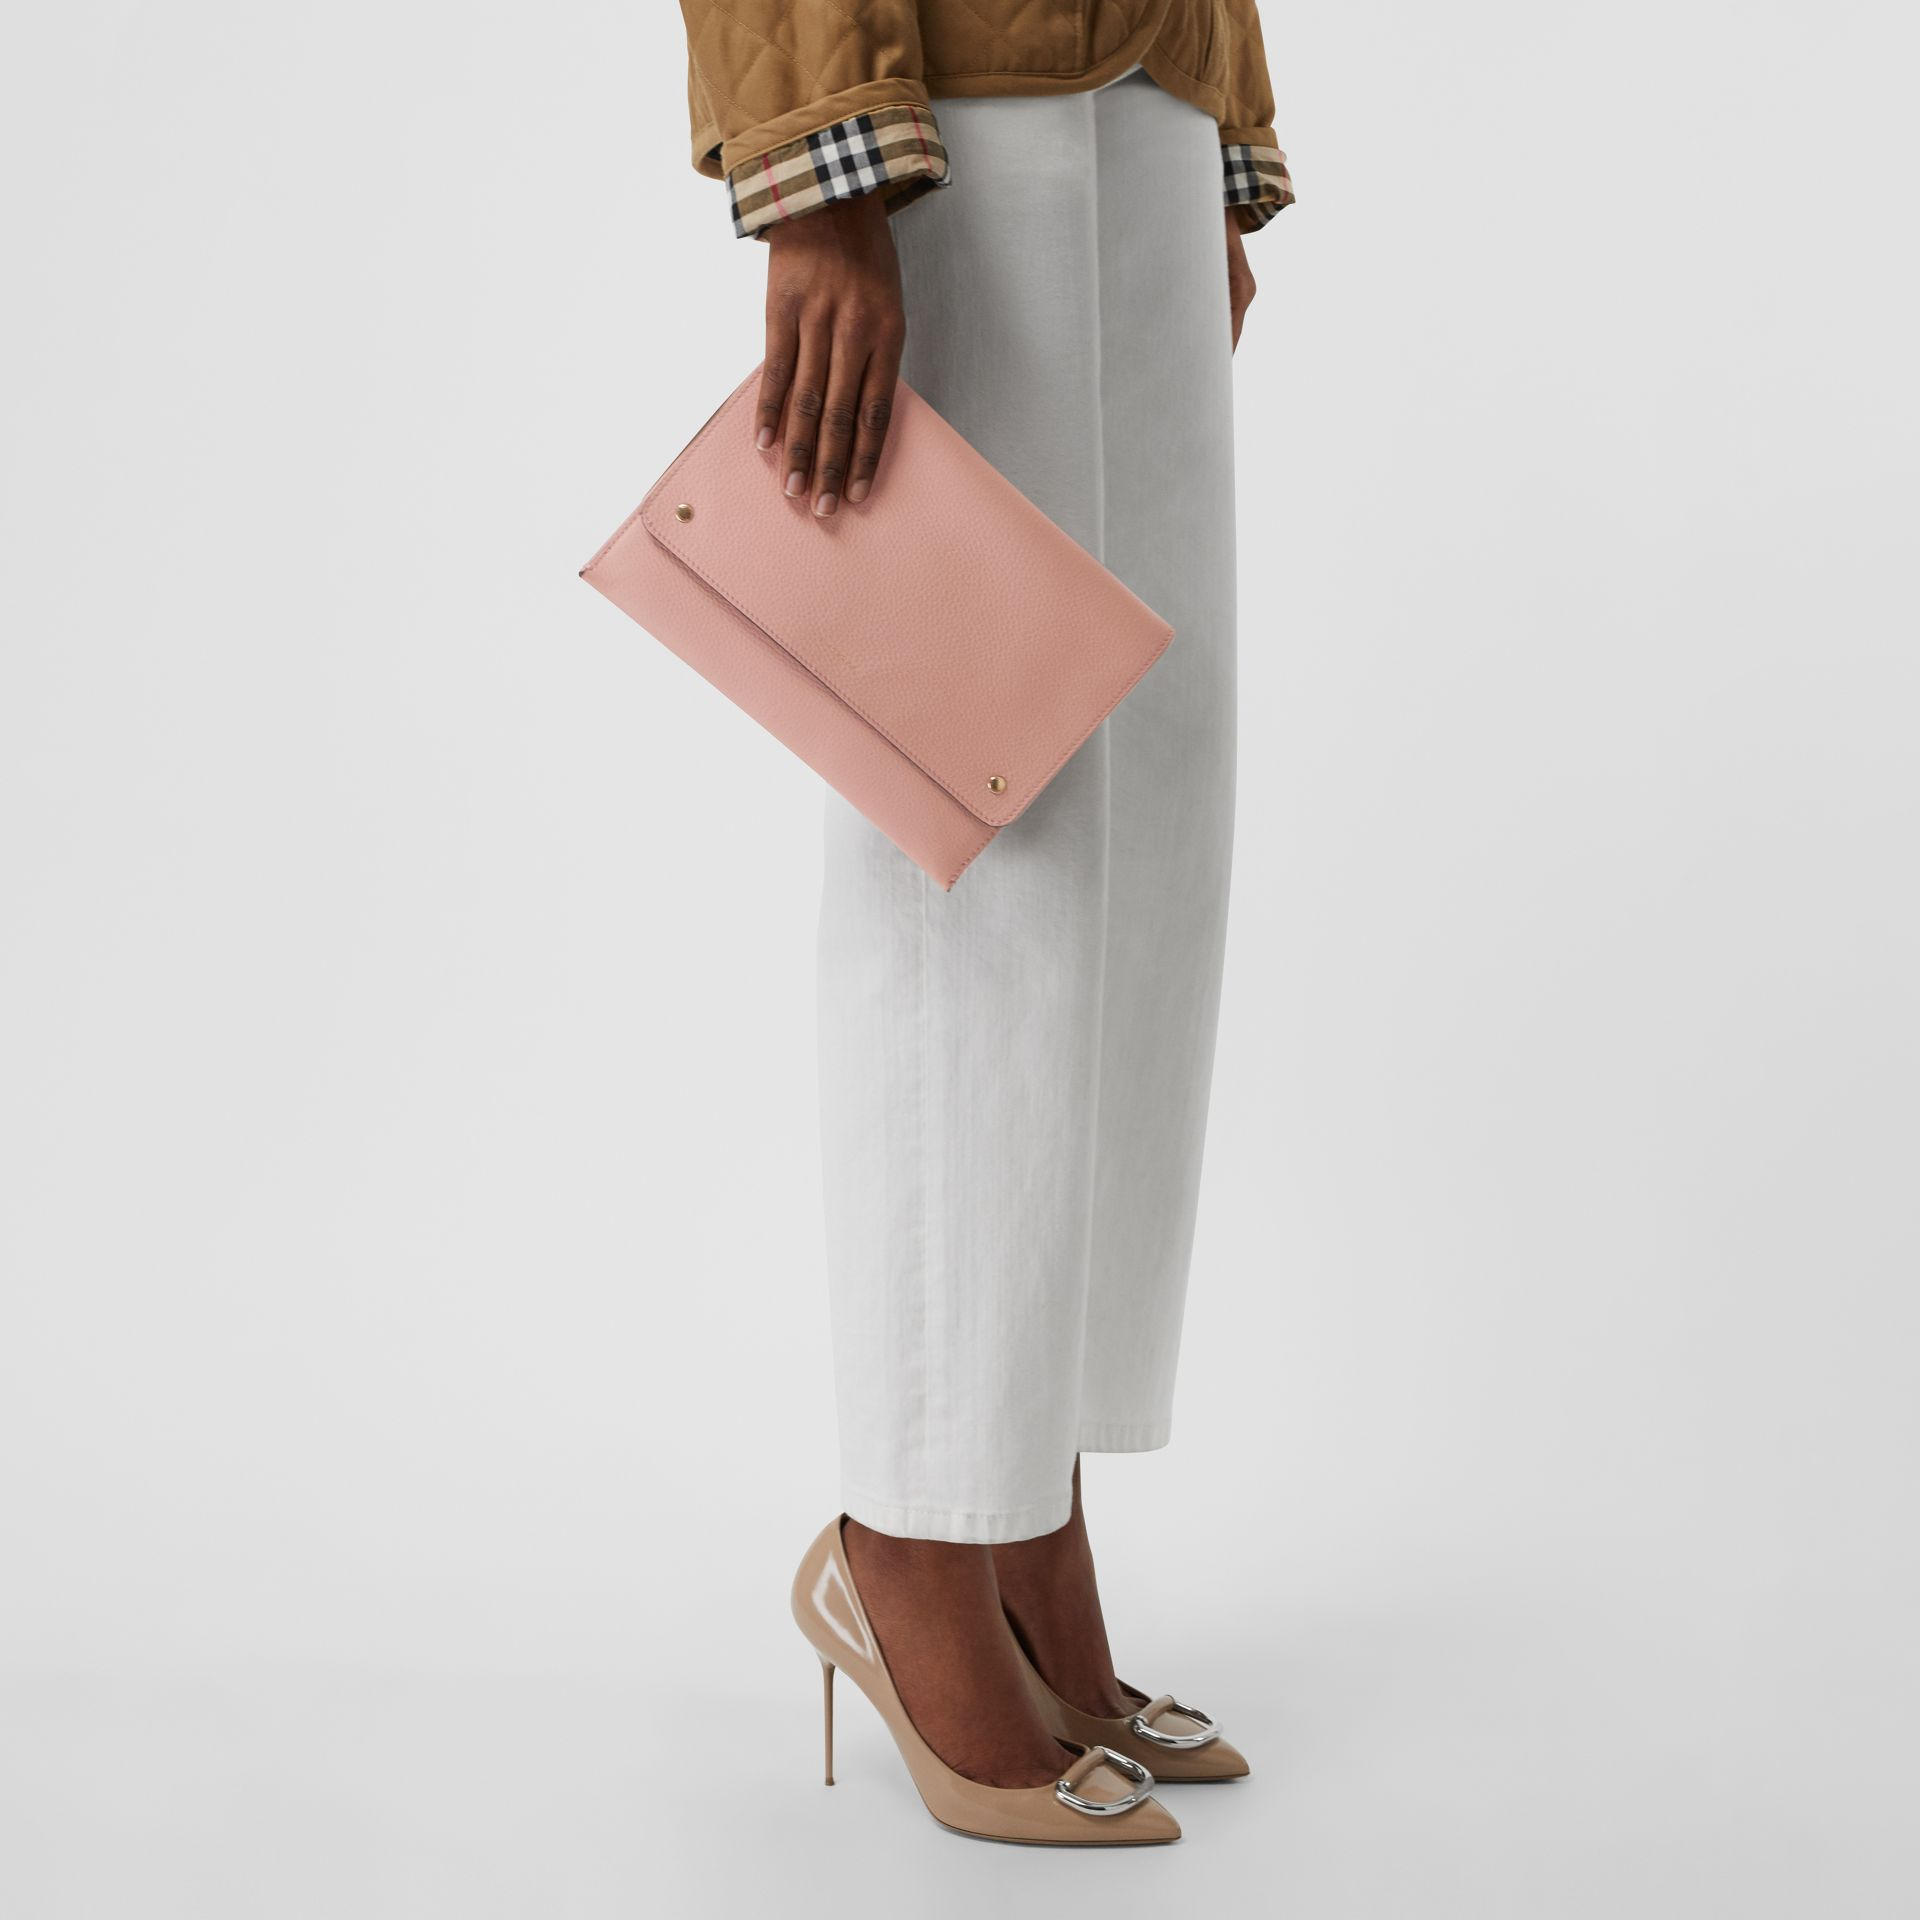 Leather Envelope Crossbody Bag in Ash Rose - Women | Burberry - gallery image 3